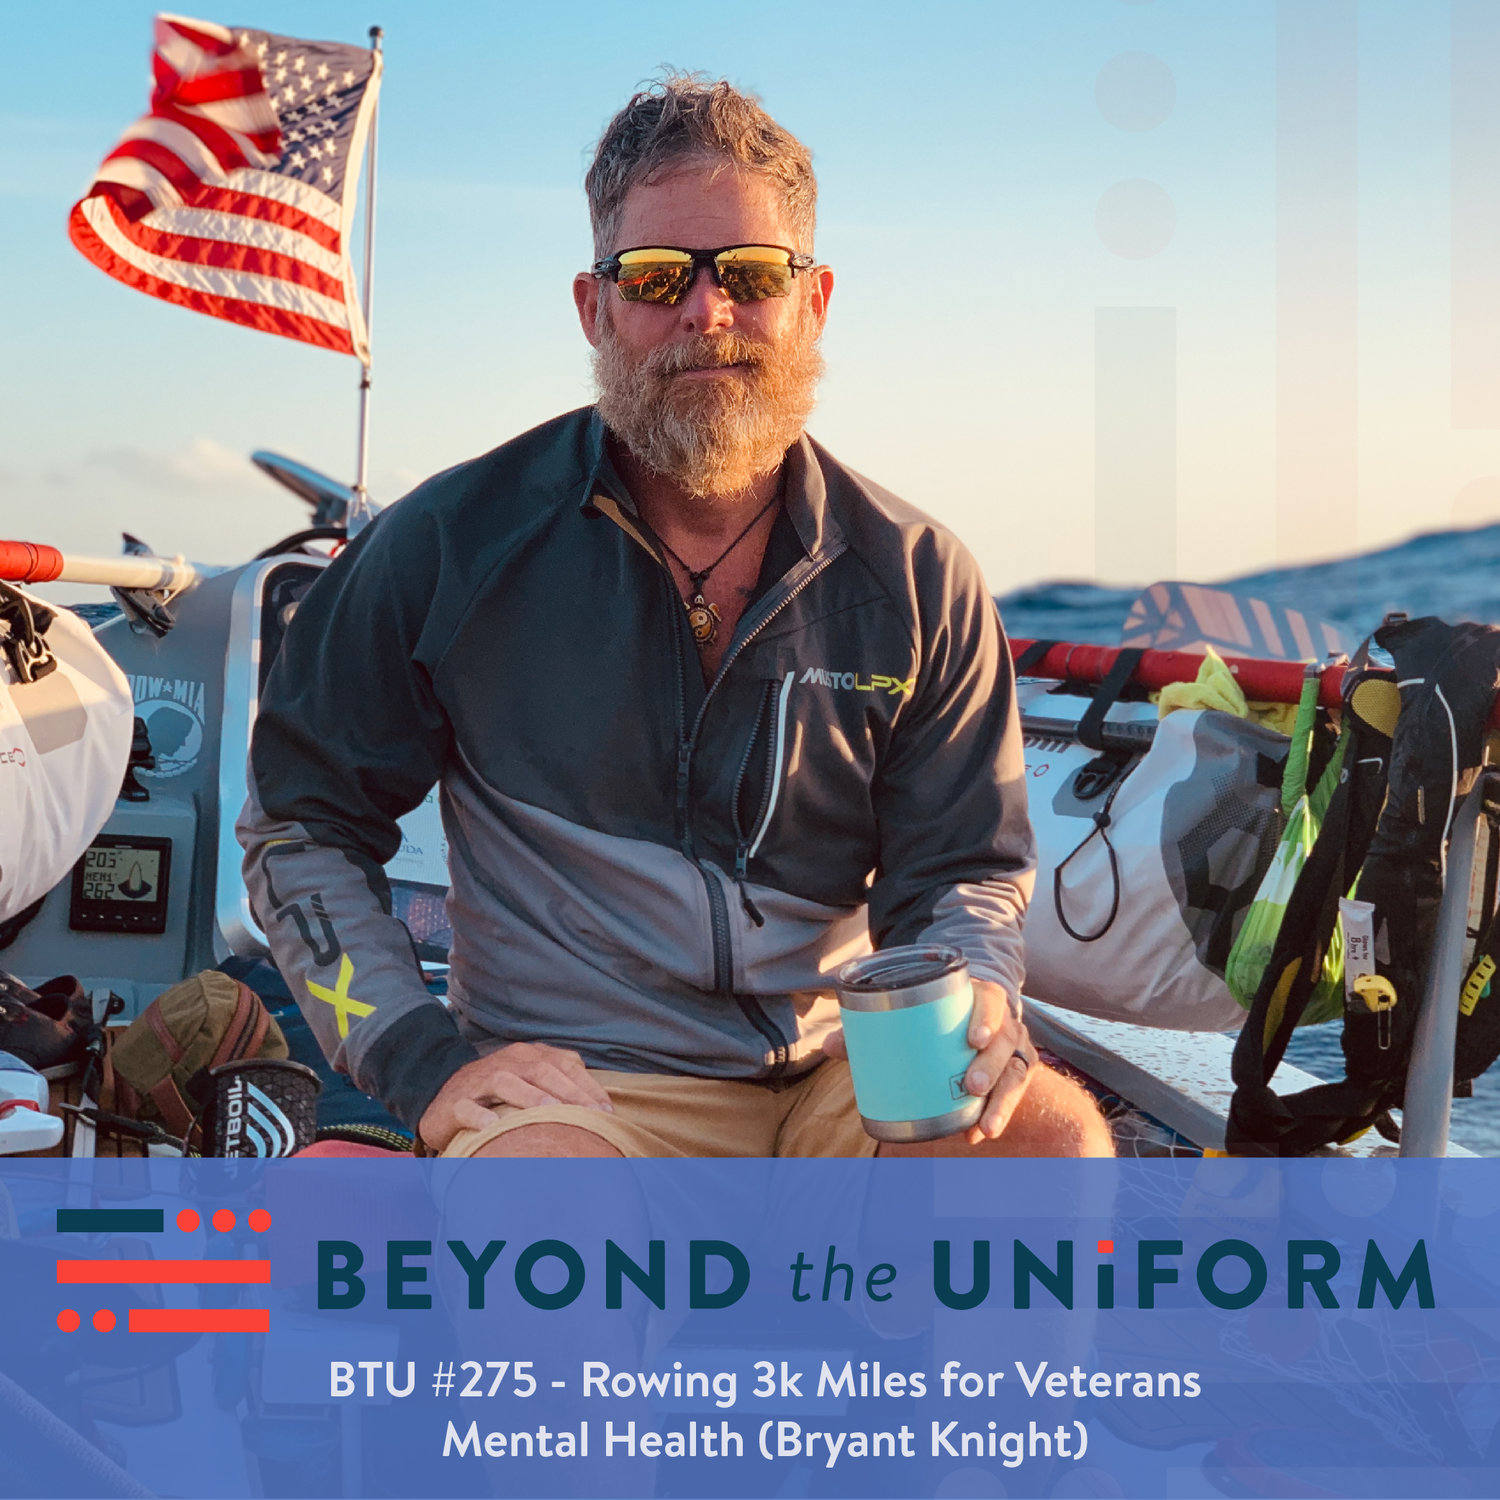 3k In Miles >> Btu 275 Rowing 3k Miles For Veterans Mental Health Bryant Knight